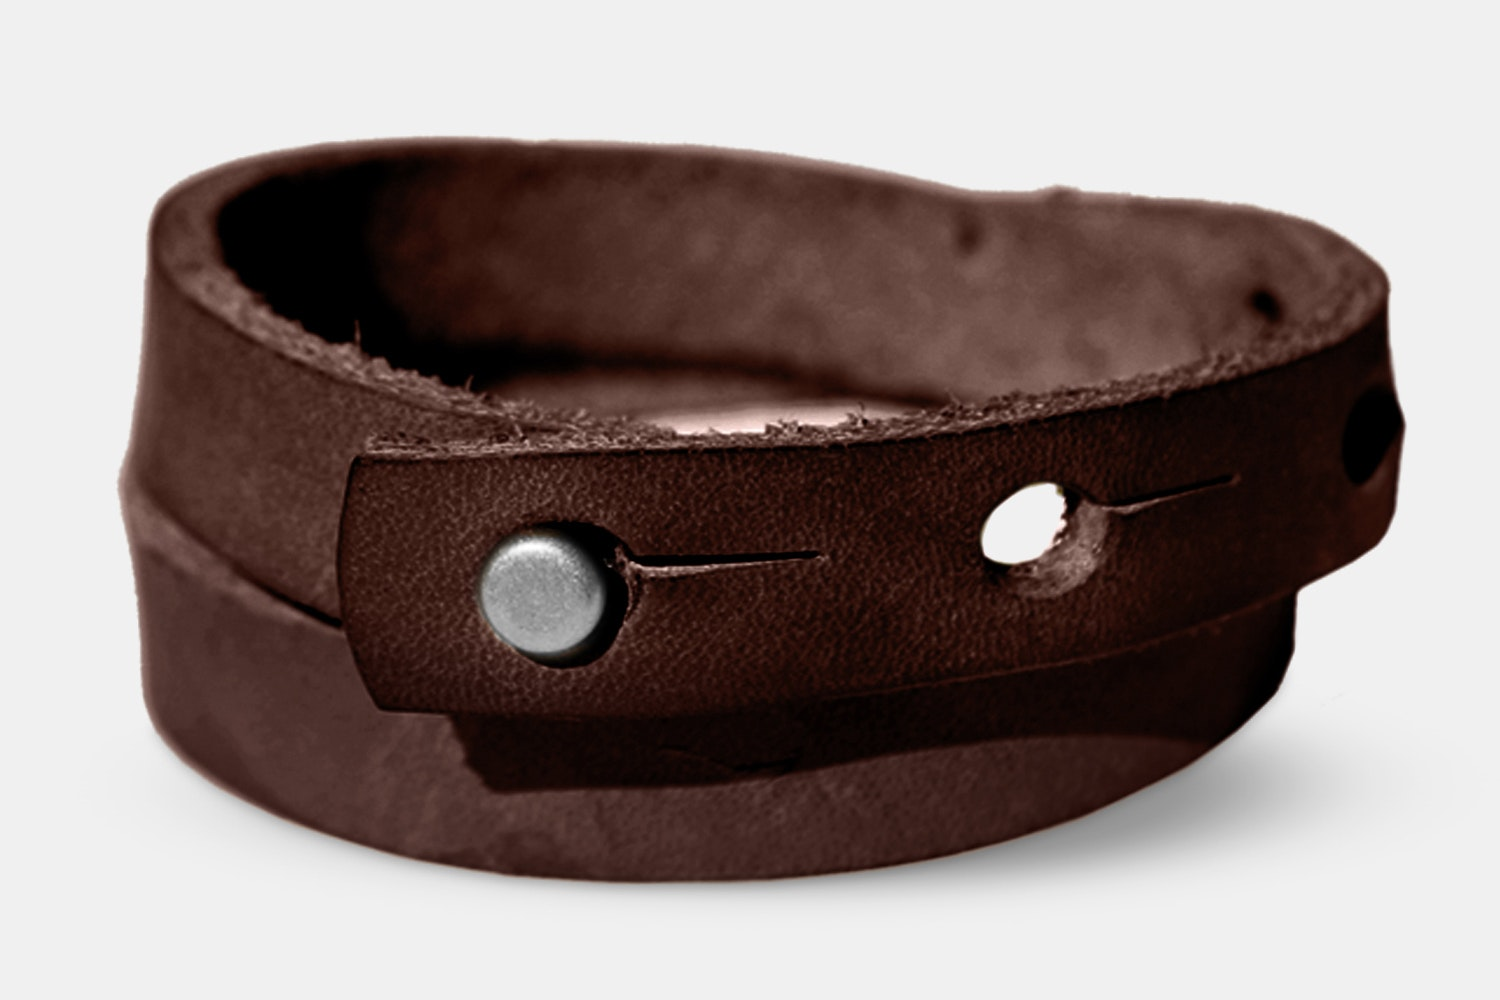 Double Wrap Wristband - Brown/Nickel Plate - OS